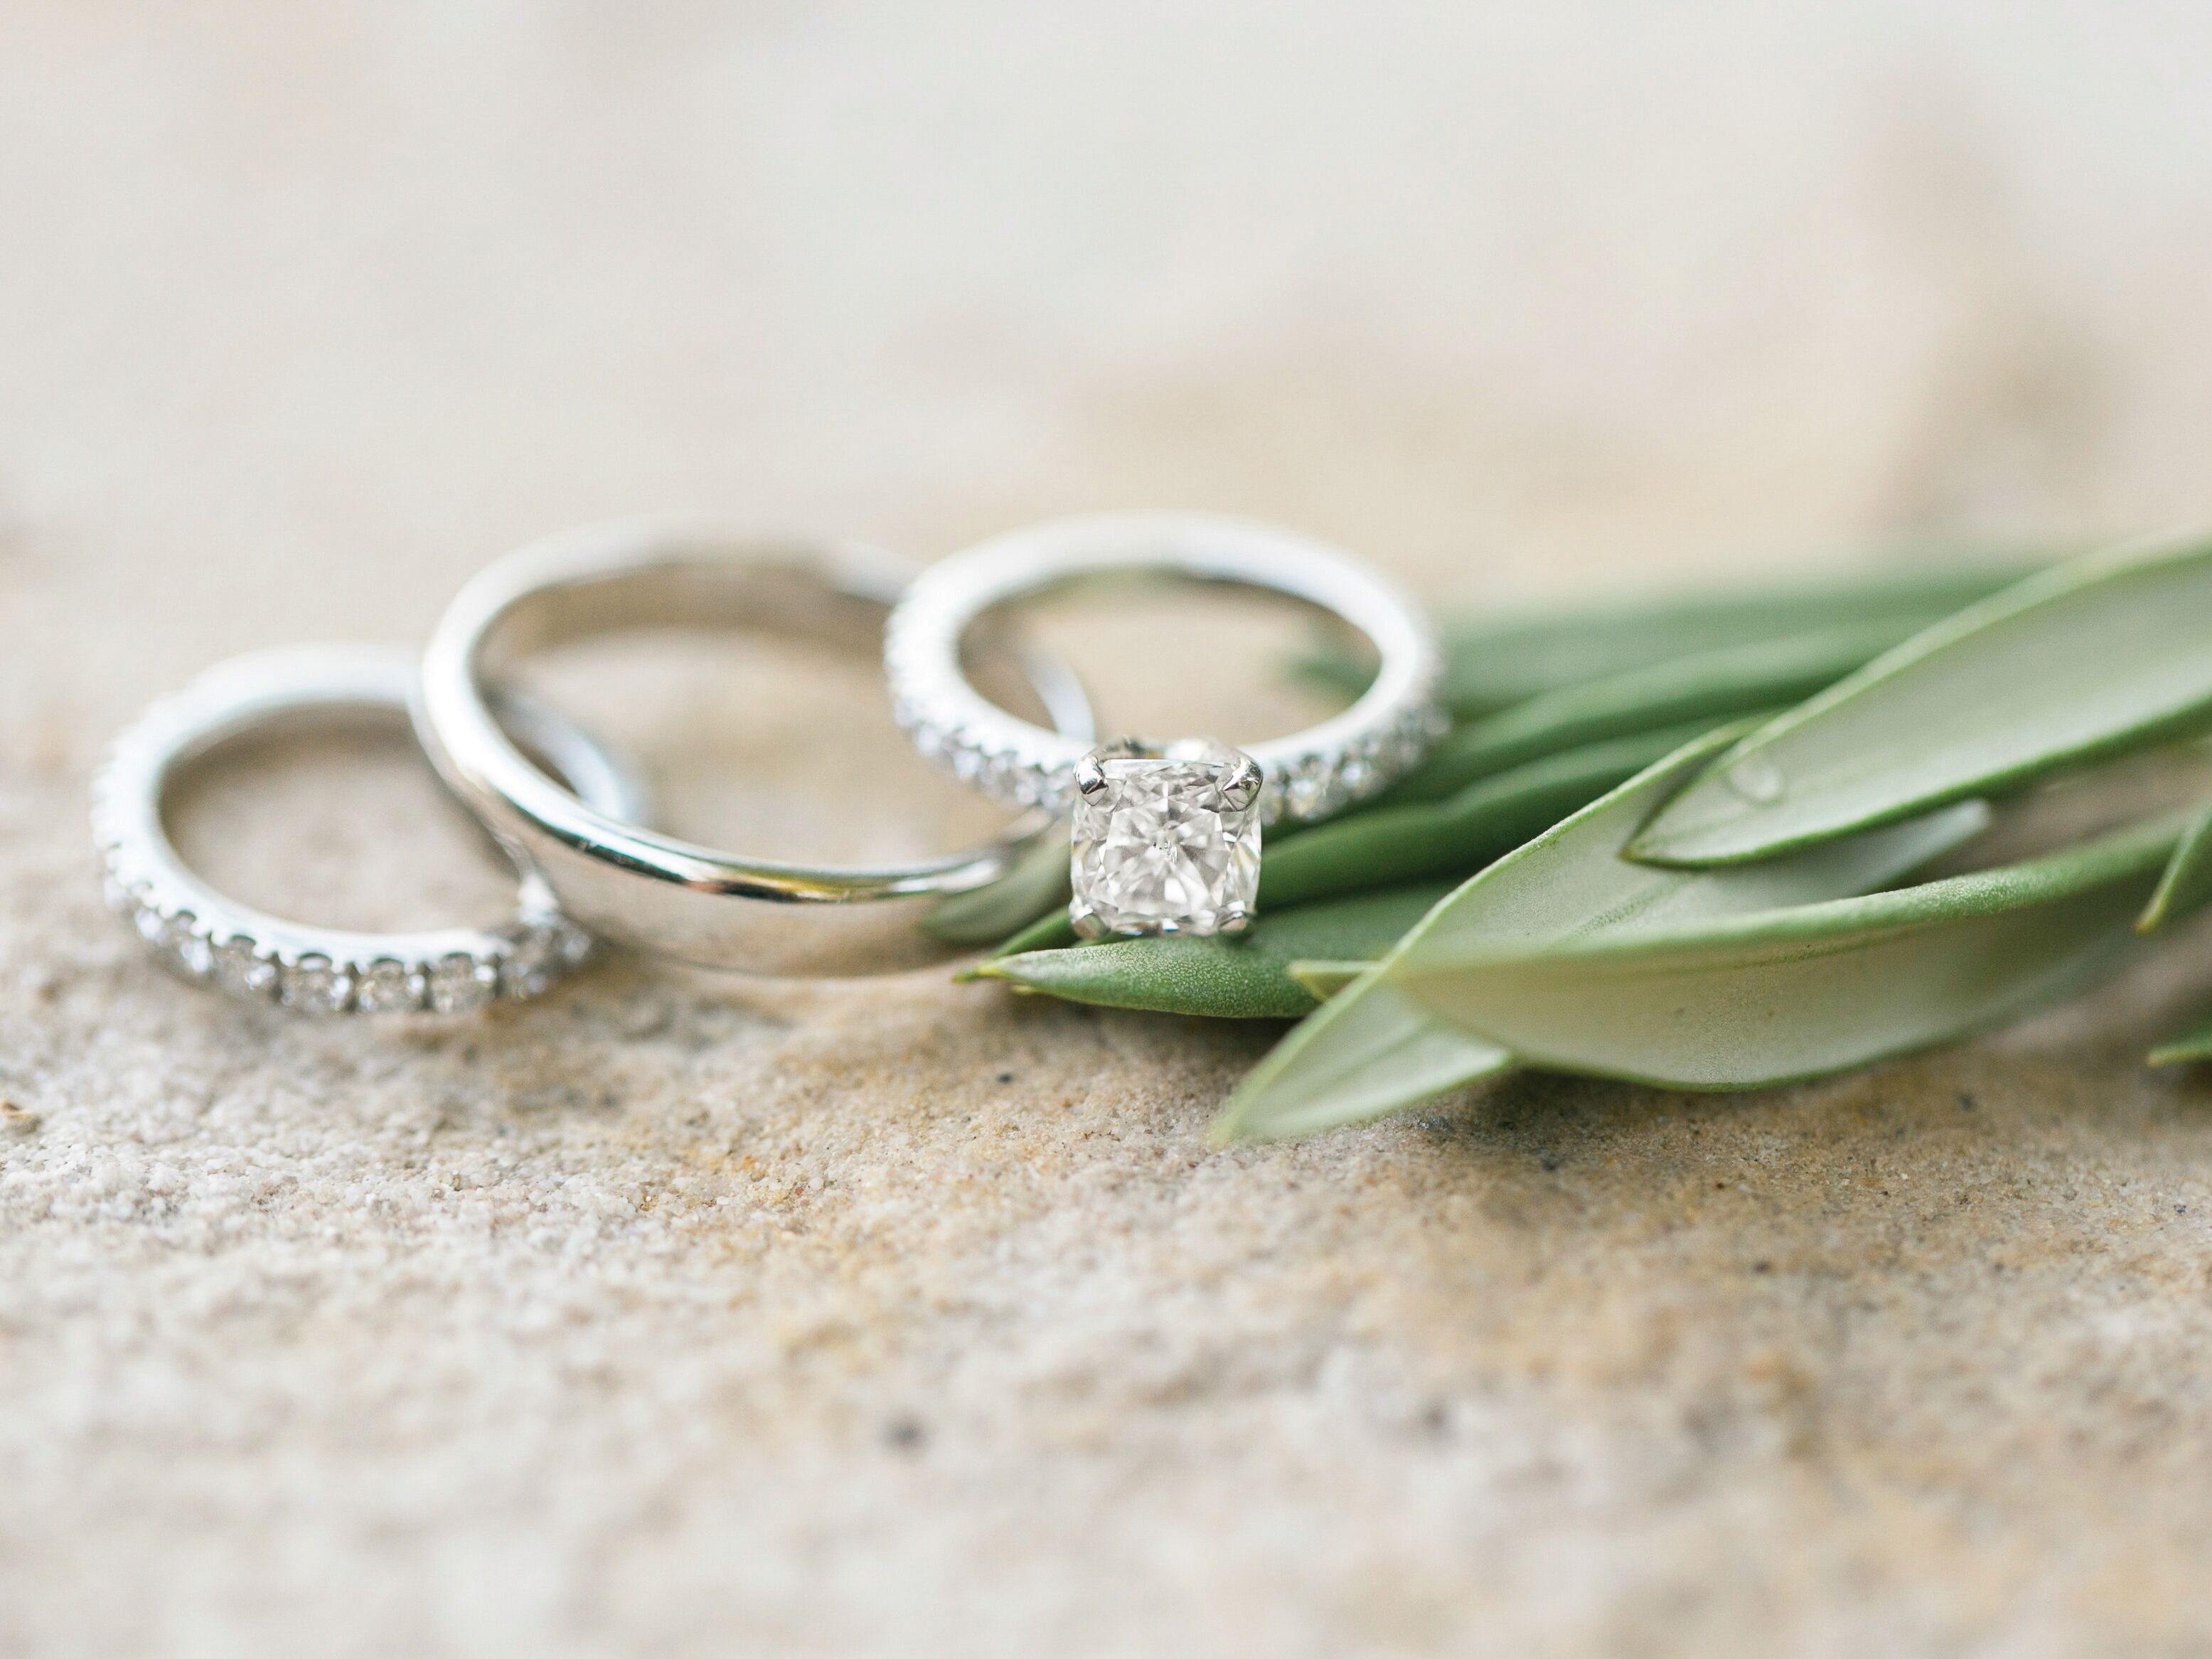 bella cheap affordable rings luce wedding of awesome lovely sets idea